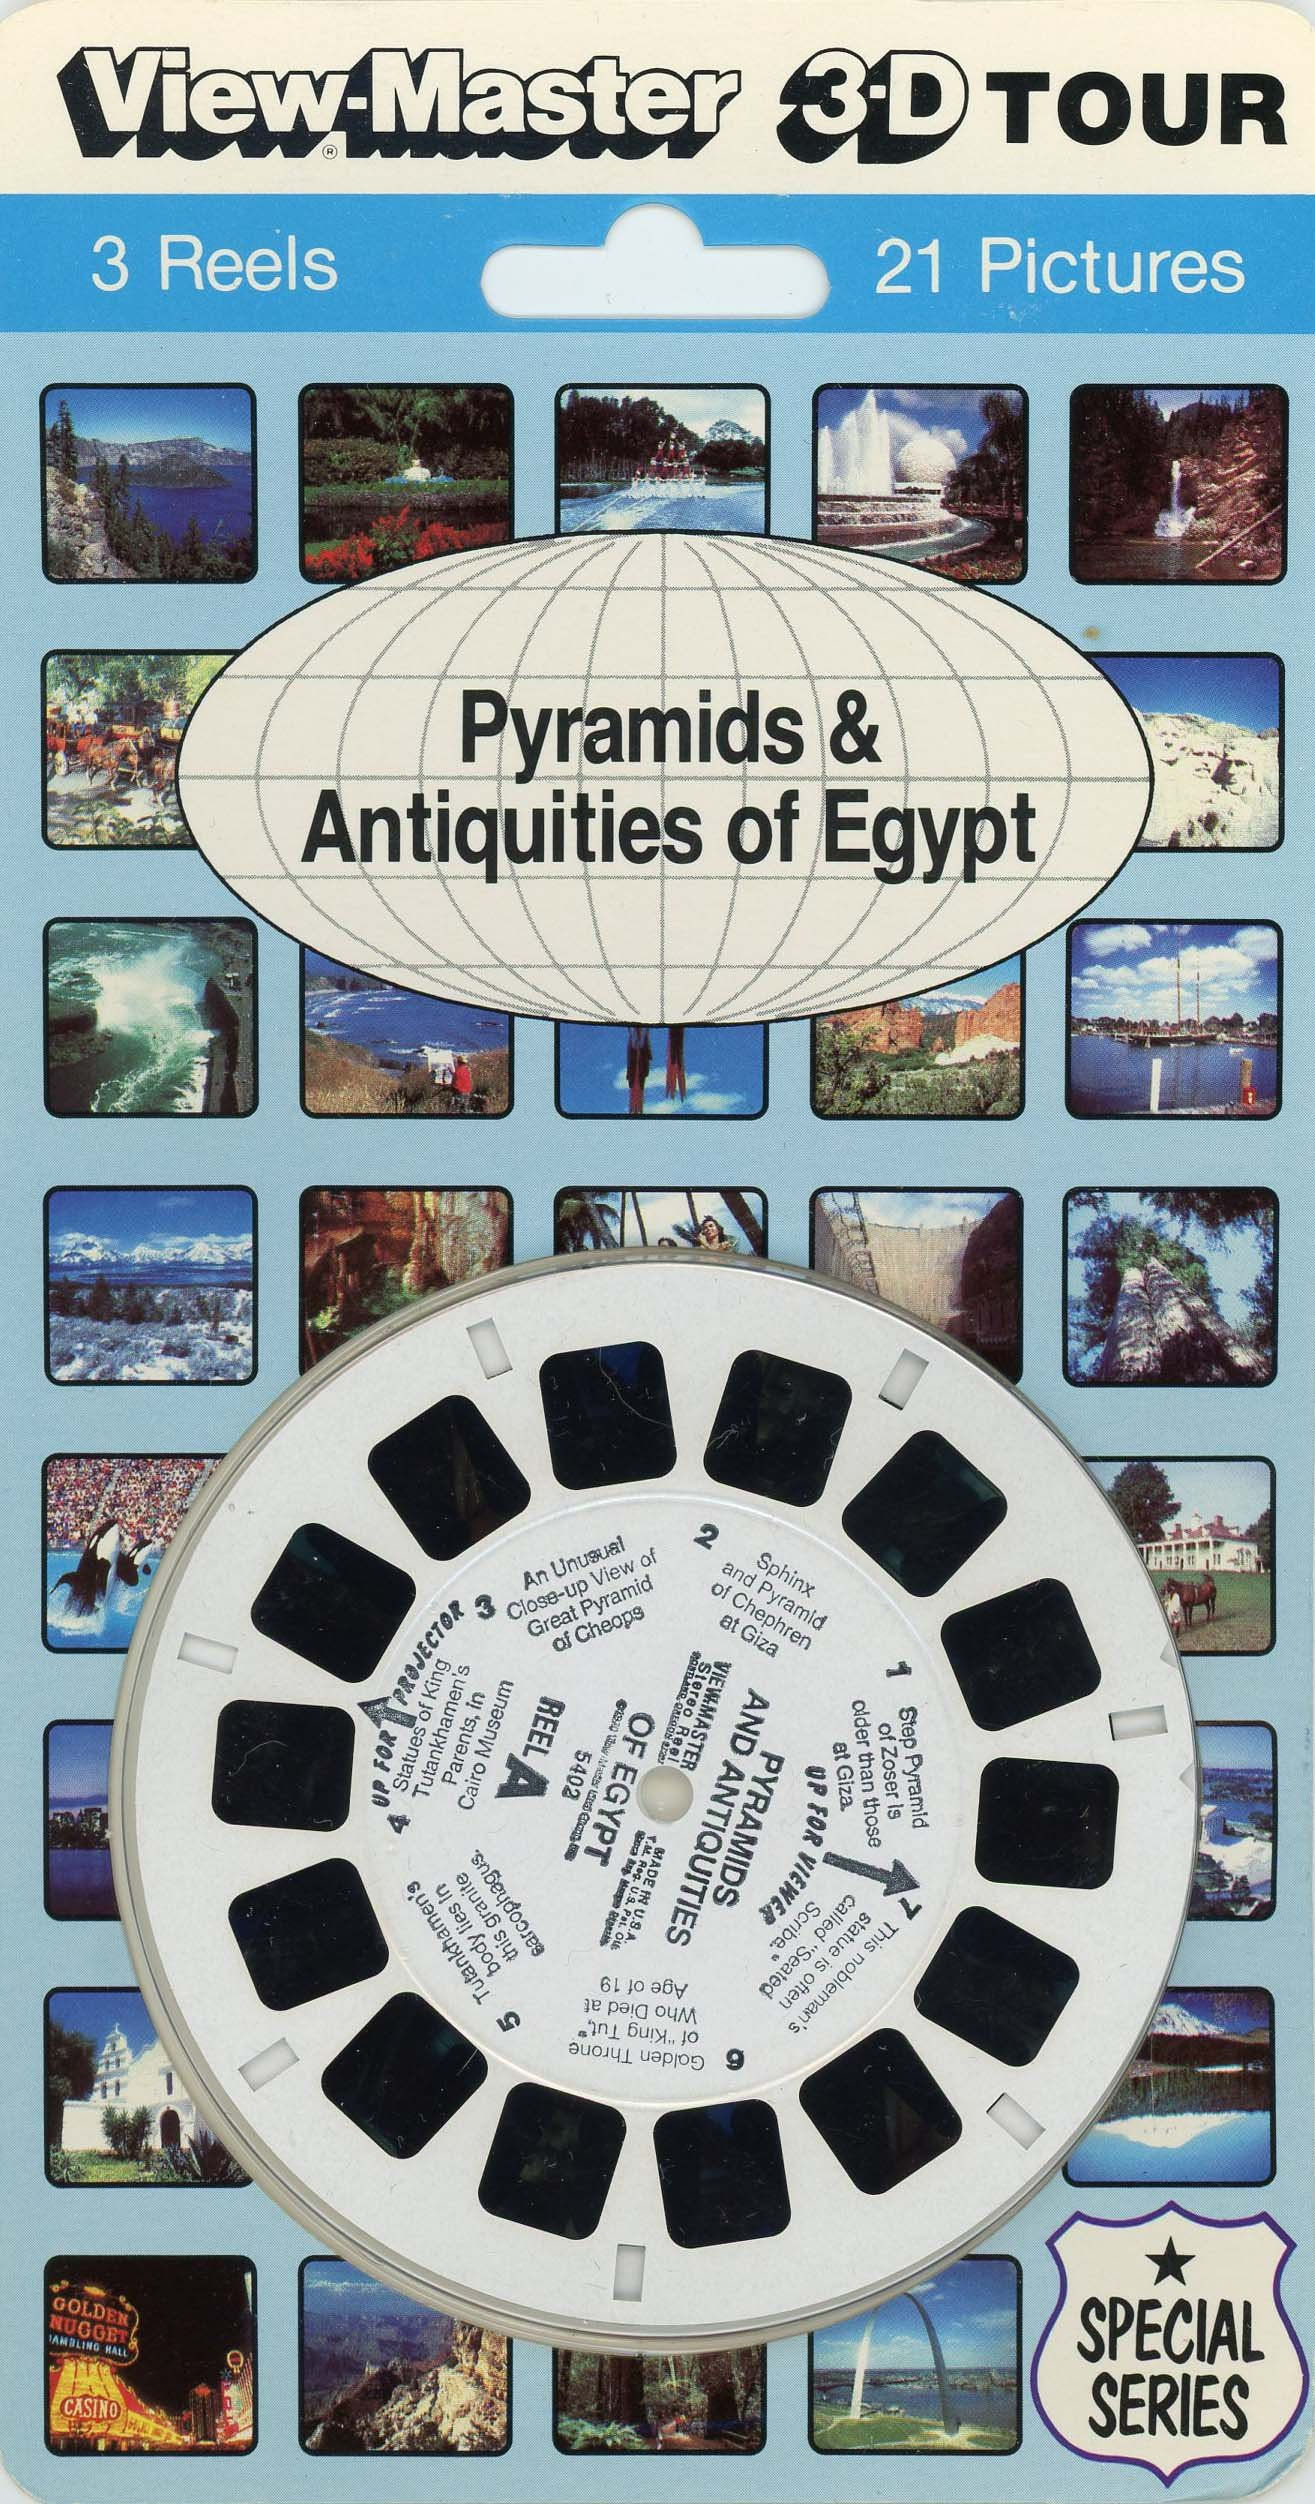 ViewMaster -Pyramids and Antiquities - ViewMaster Reels 3D - from the 1970s